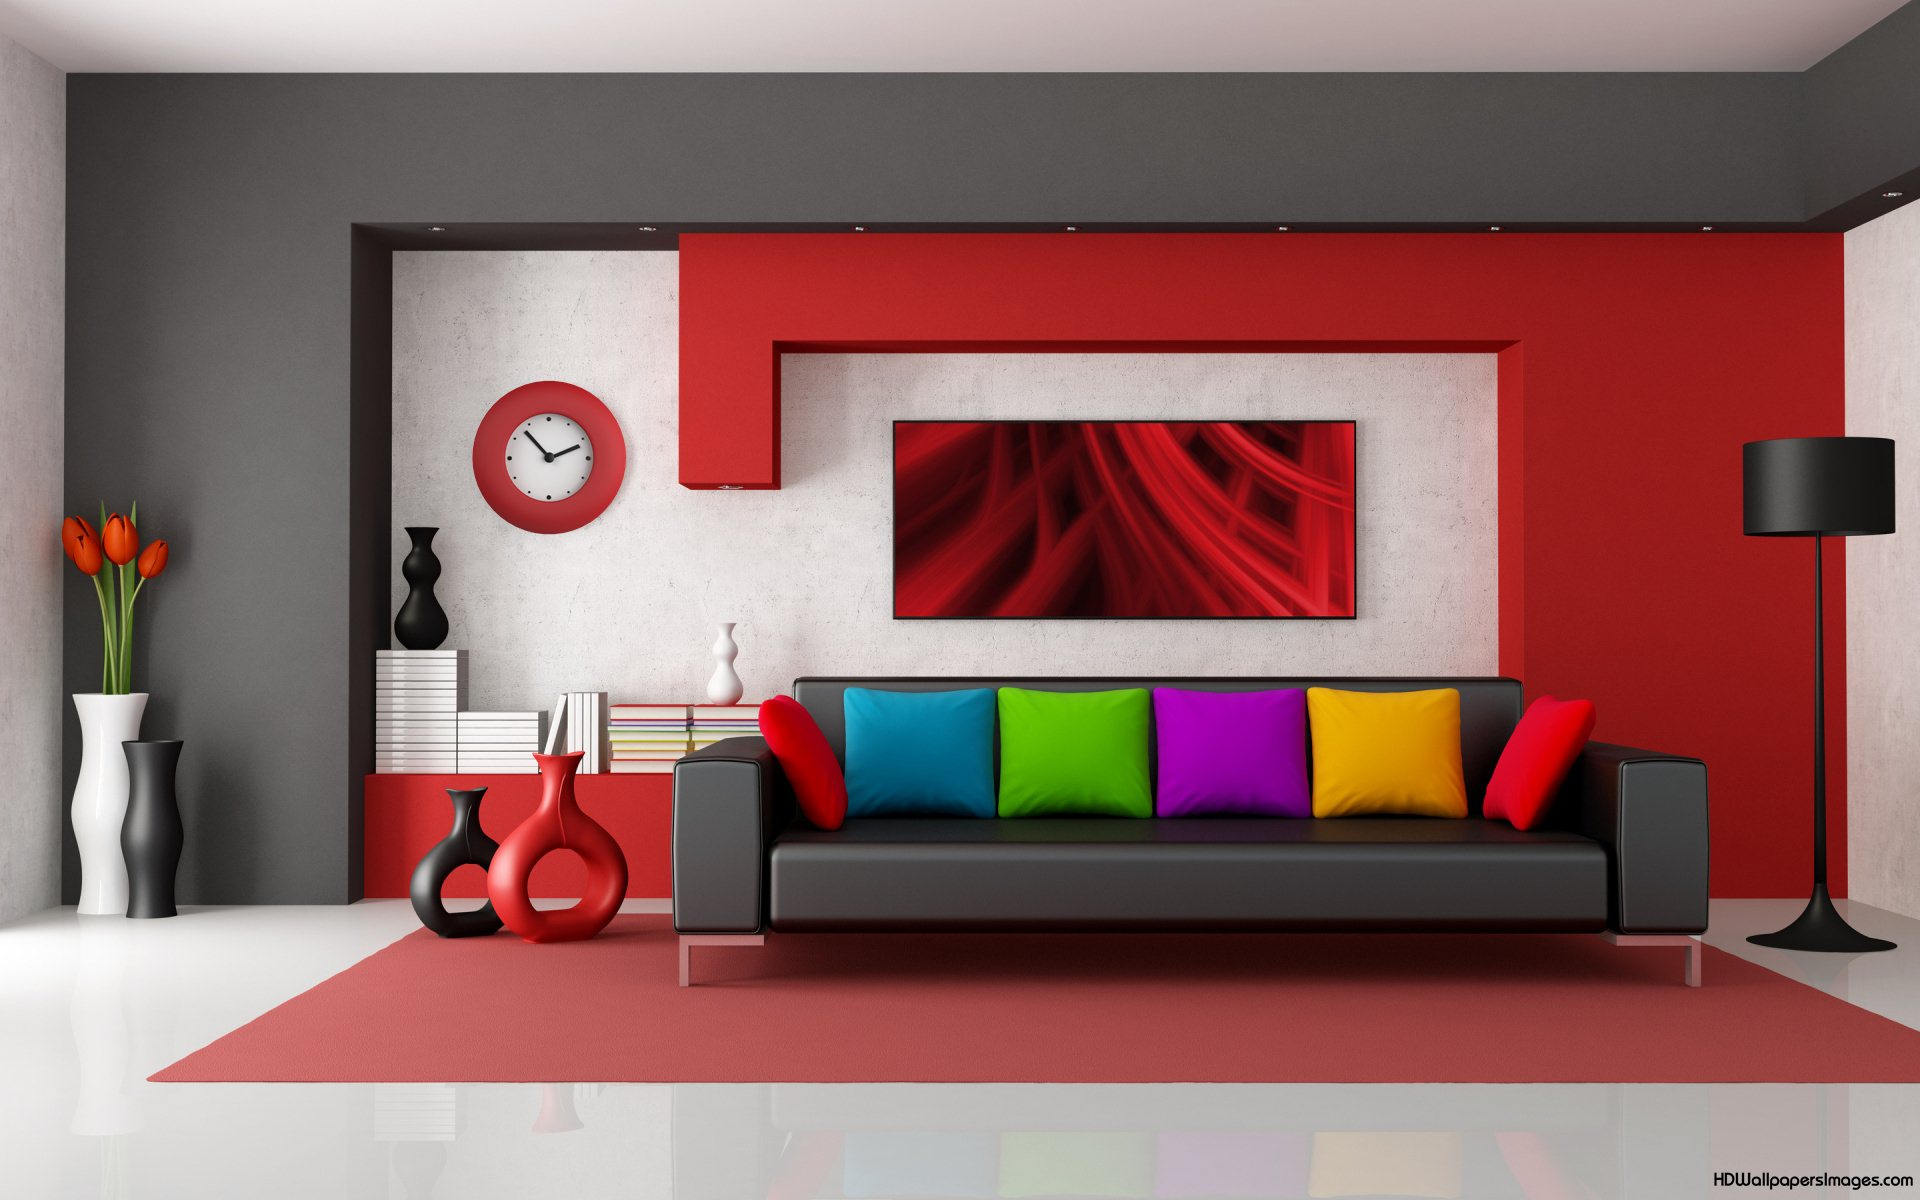 Get Spacious Bedroom With Fitted Furniture Designs